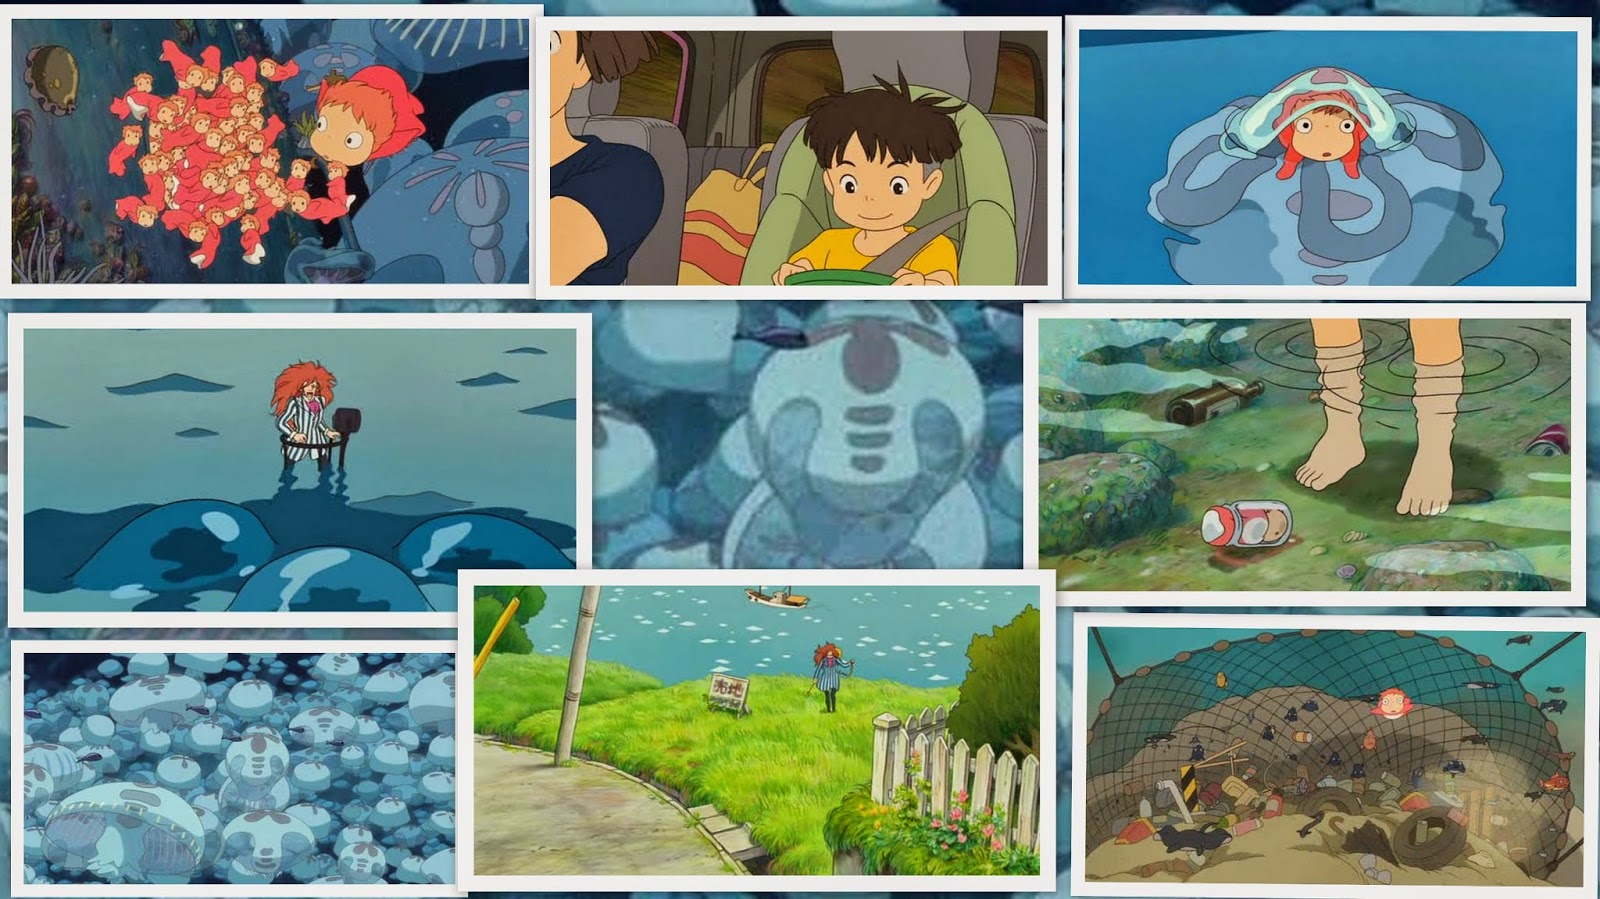 Ponyo: On the Cliff by the Sea (2008)